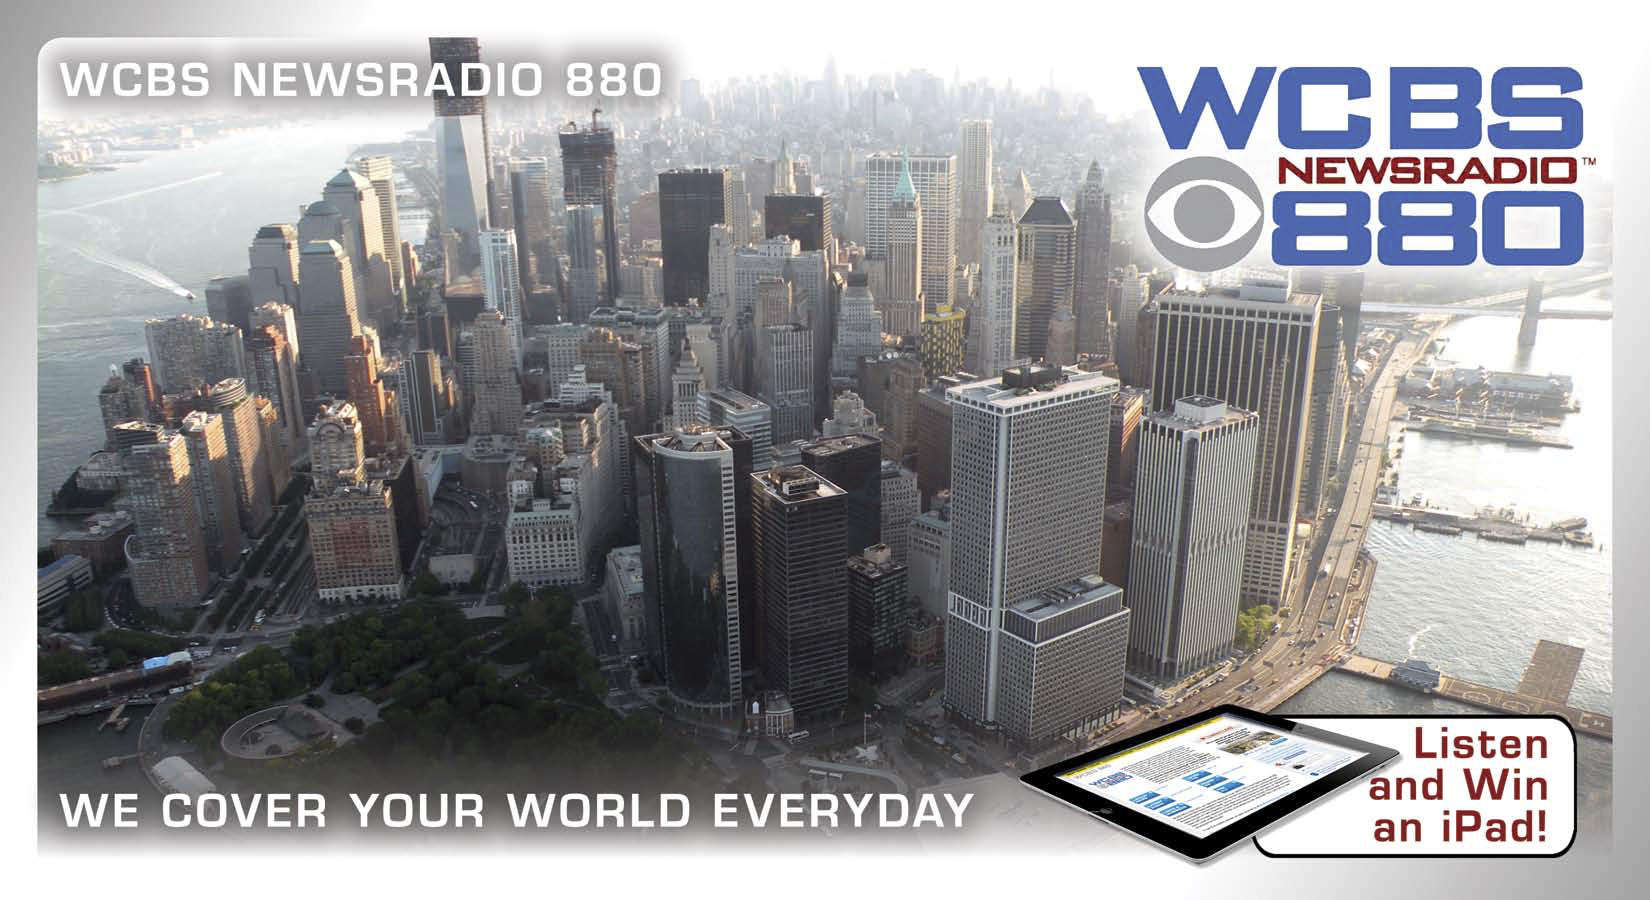 PTP Marketing - WCBS, New York